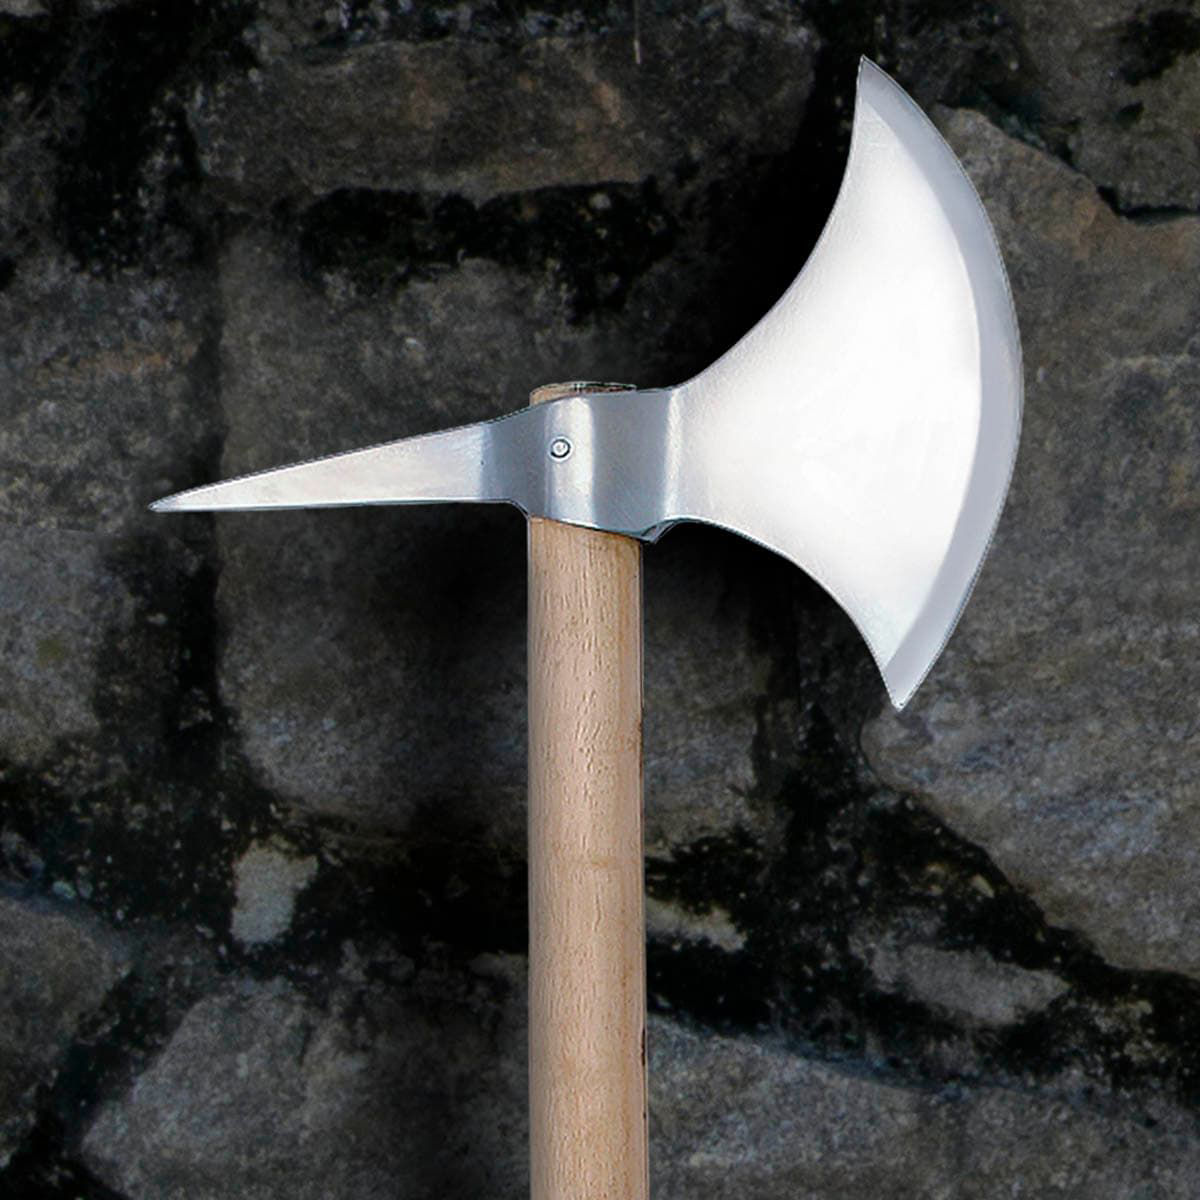 replica one-handed medieval axe with high carbon steel head with back spike and hardwood shaft, made by Windlass